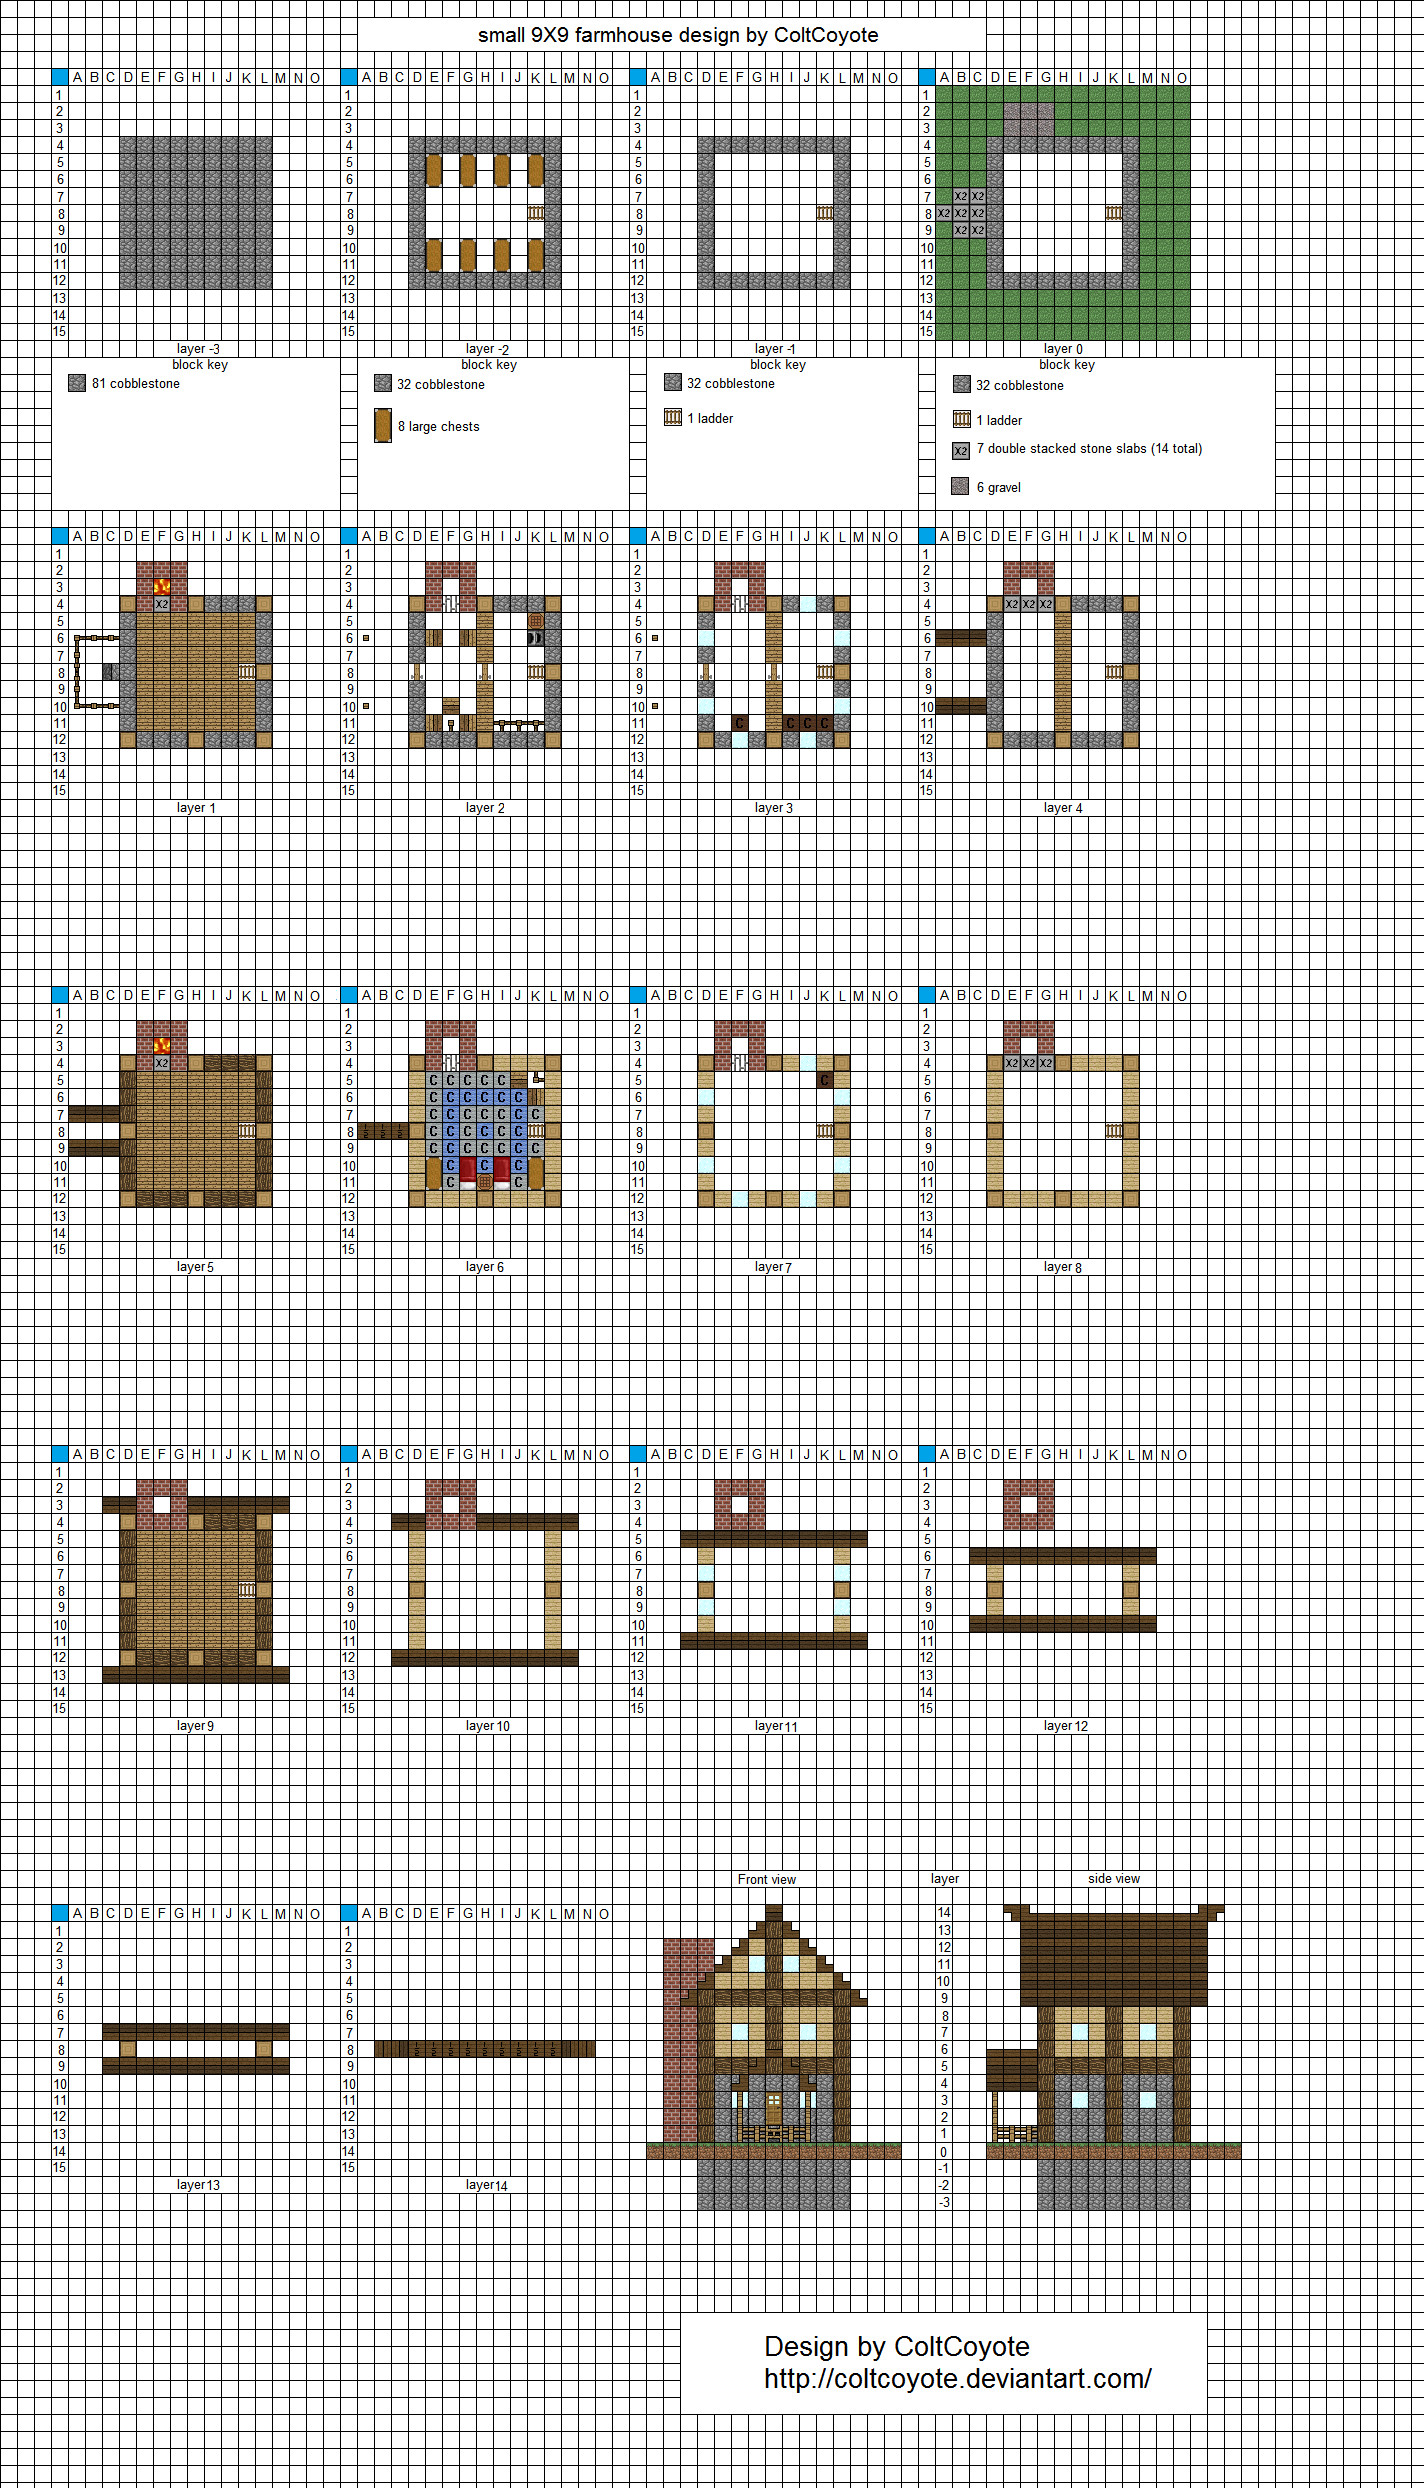 Prototype floorplan layout mk2 wip by coltcoyote on deviantart for Minecraft house blueprints